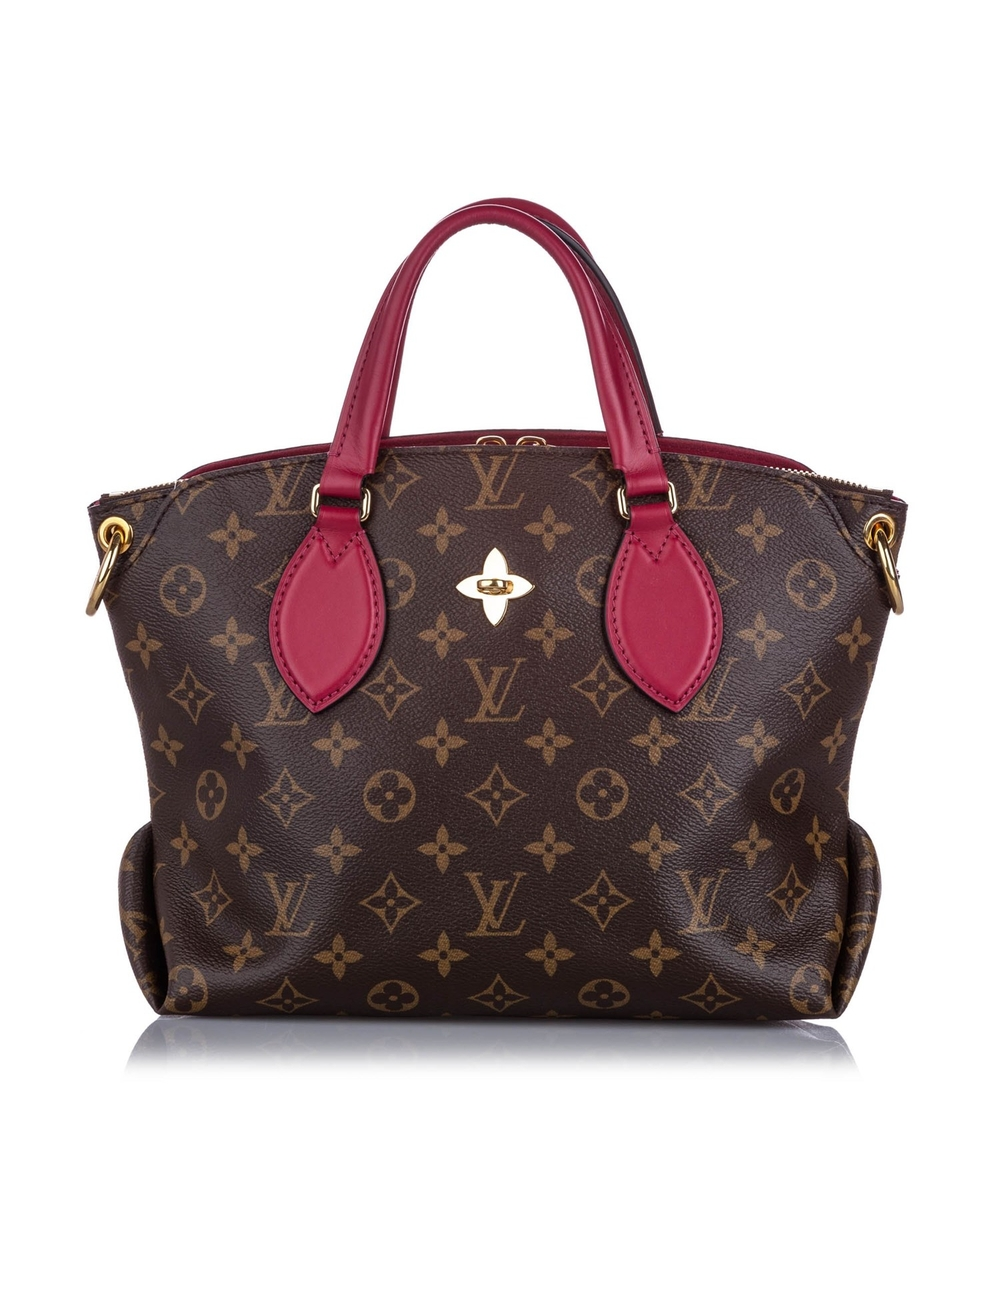 Product Details: Brown Louis Vuitton Monogram Flower Zipped Tote PM Bag. The Flower Zipped Tote feat